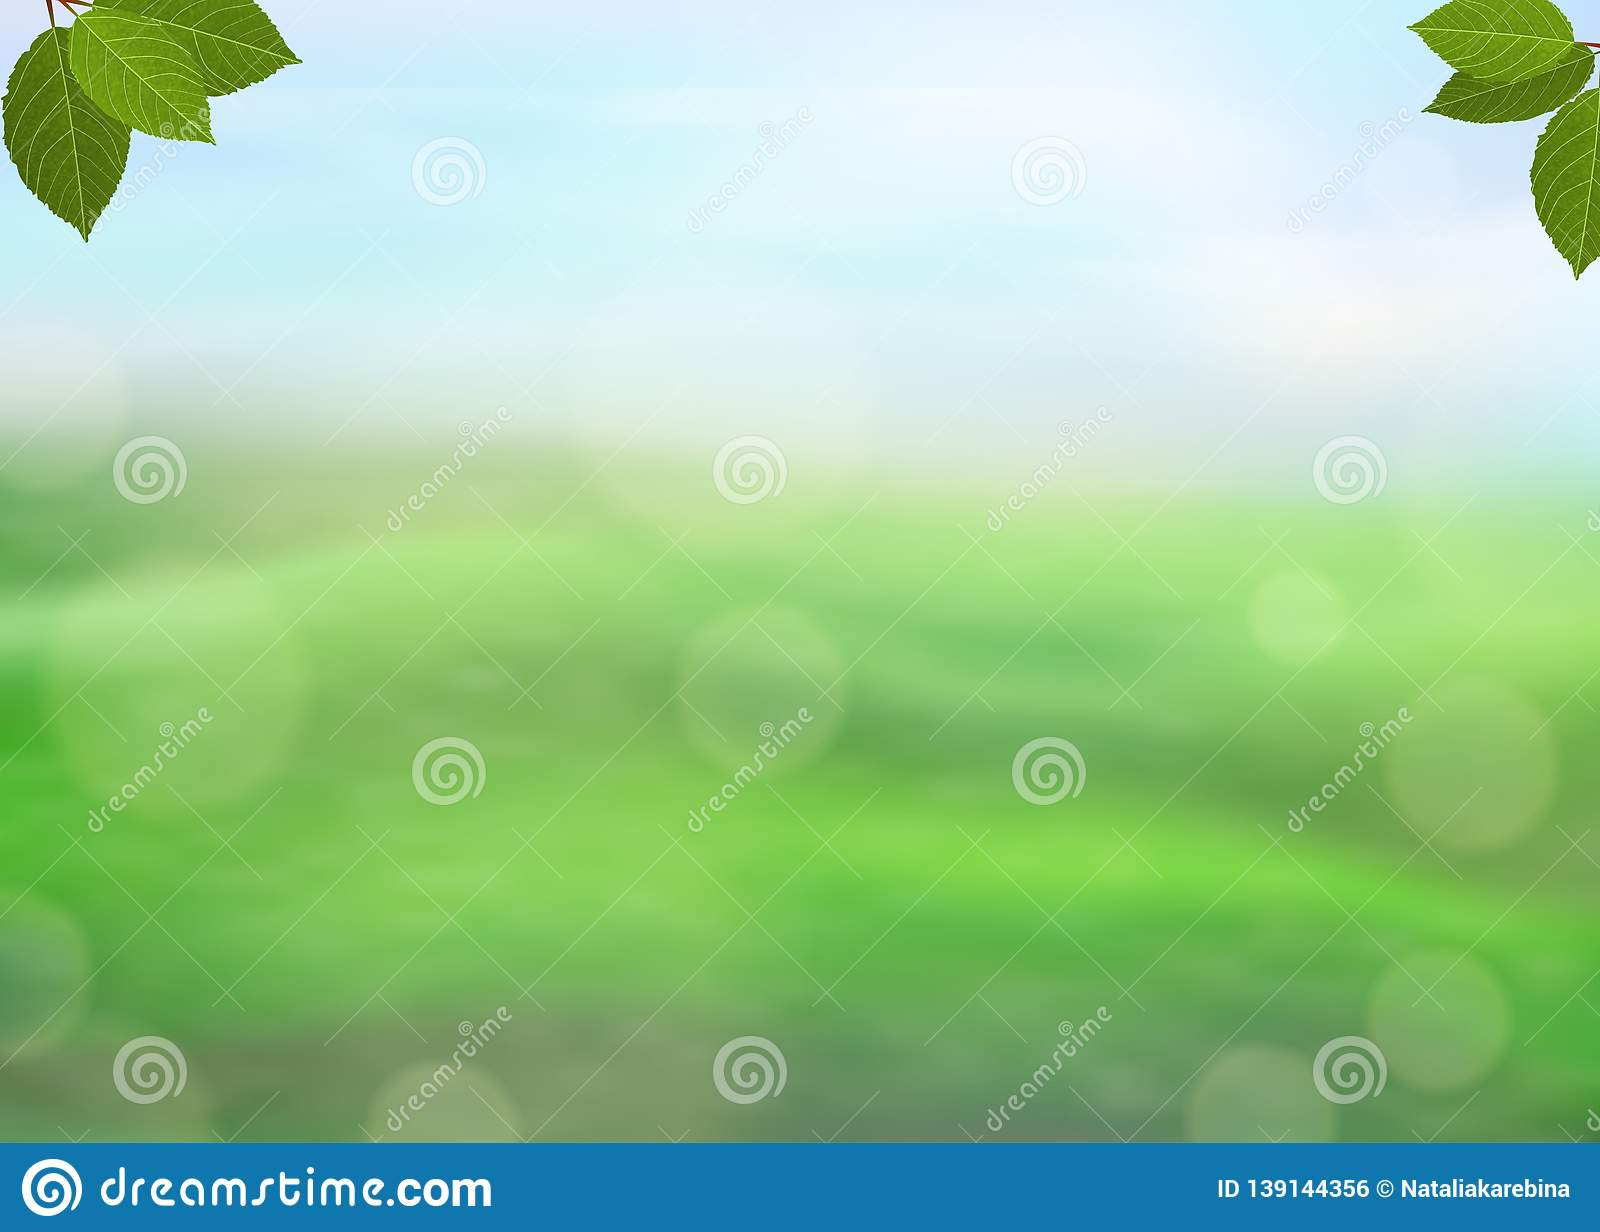 Nature green background with fresh leaves on a blurred background of grass and sky and bokeh effect. View with copy space add text